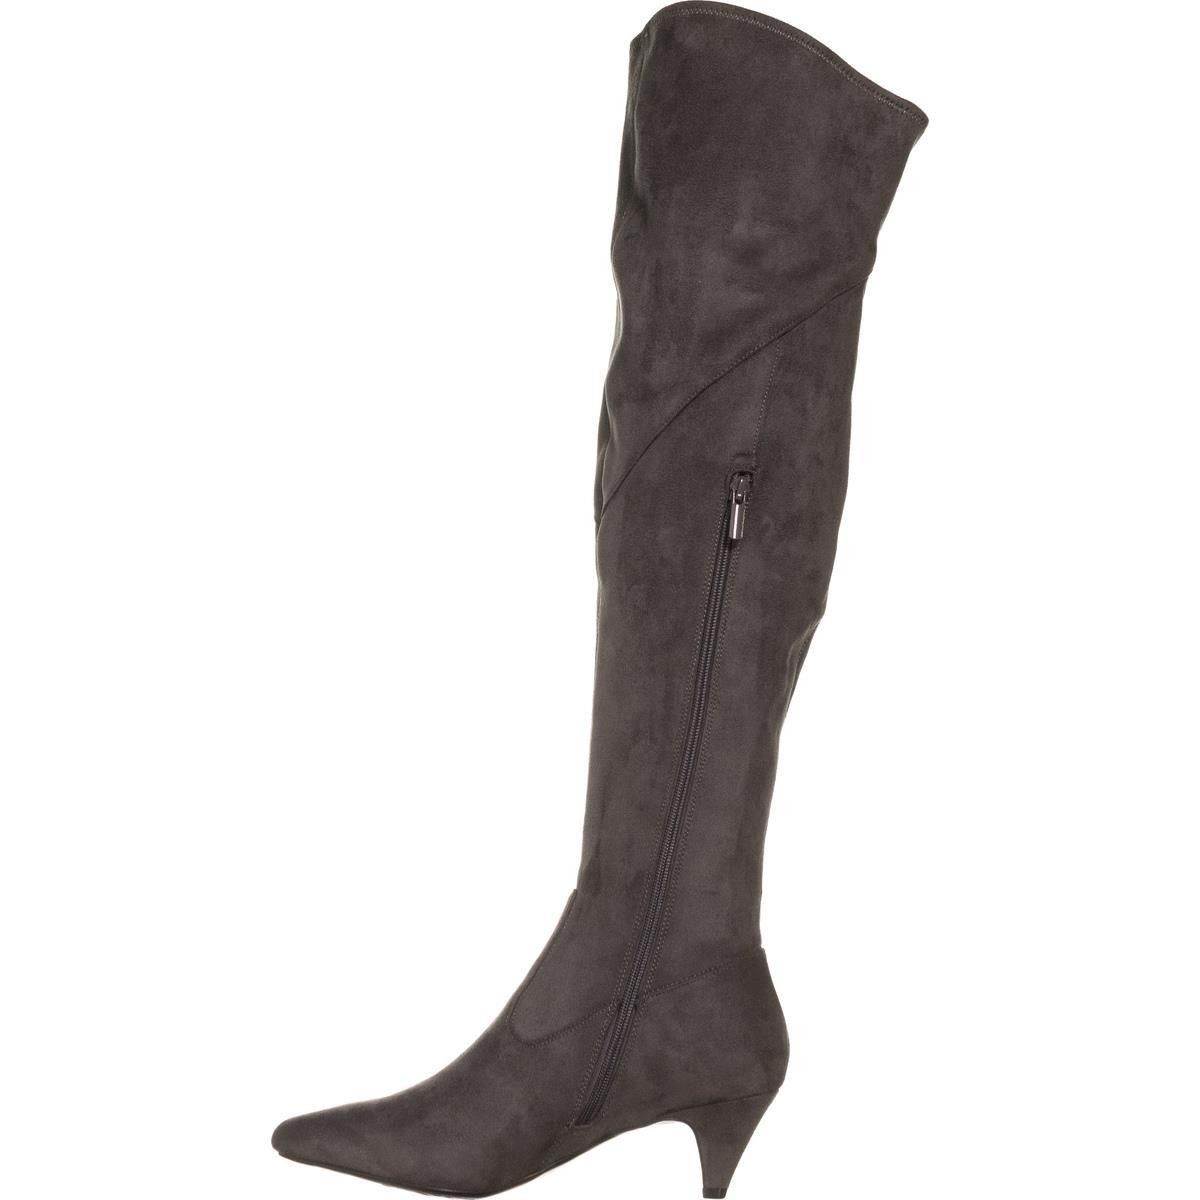 Impo Edeva Over The Knee Kitten Heel Boots Steel Grey Boots Kitten Heel Boots Kitten Heels